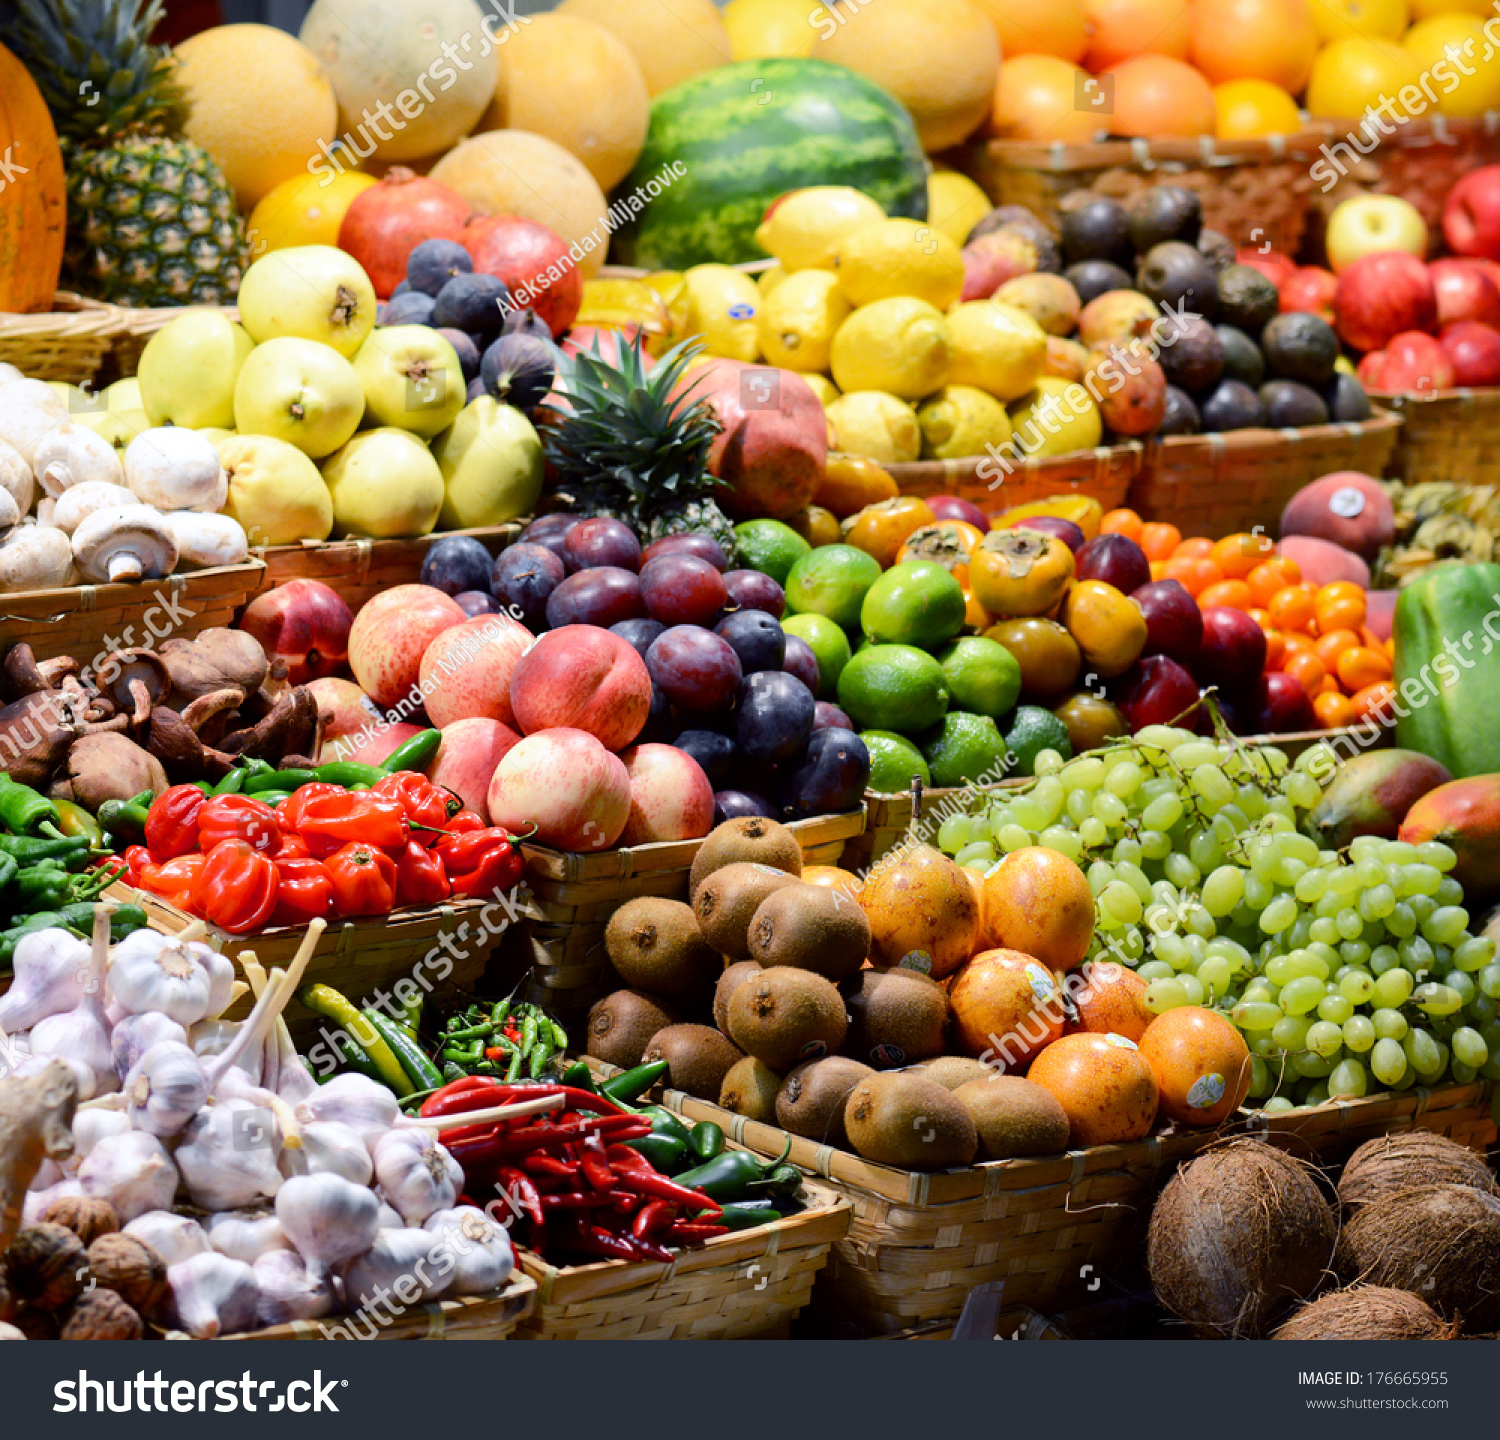 Fruit market with various colorful fresh fruits and vegetables - Market series #176665955